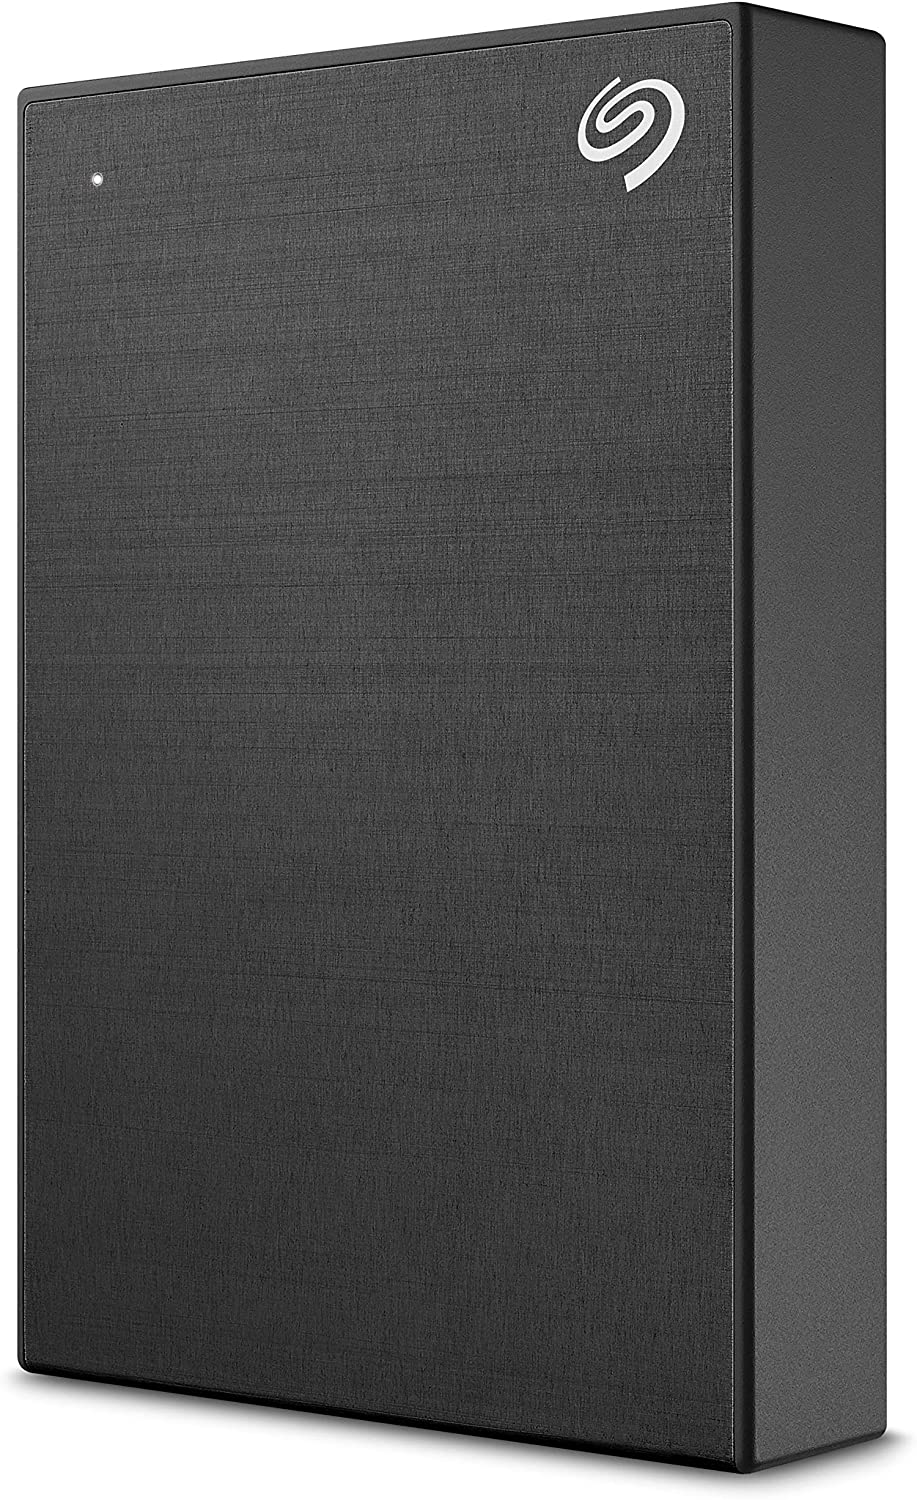 Seagate STHP5000400 Backup Plus 5TB External Hard Drive Portable HDD - Black USB 3.0 for PC Laptop and Mac, 1 Year MylioCreate, 2 Months Adobe CC Photography